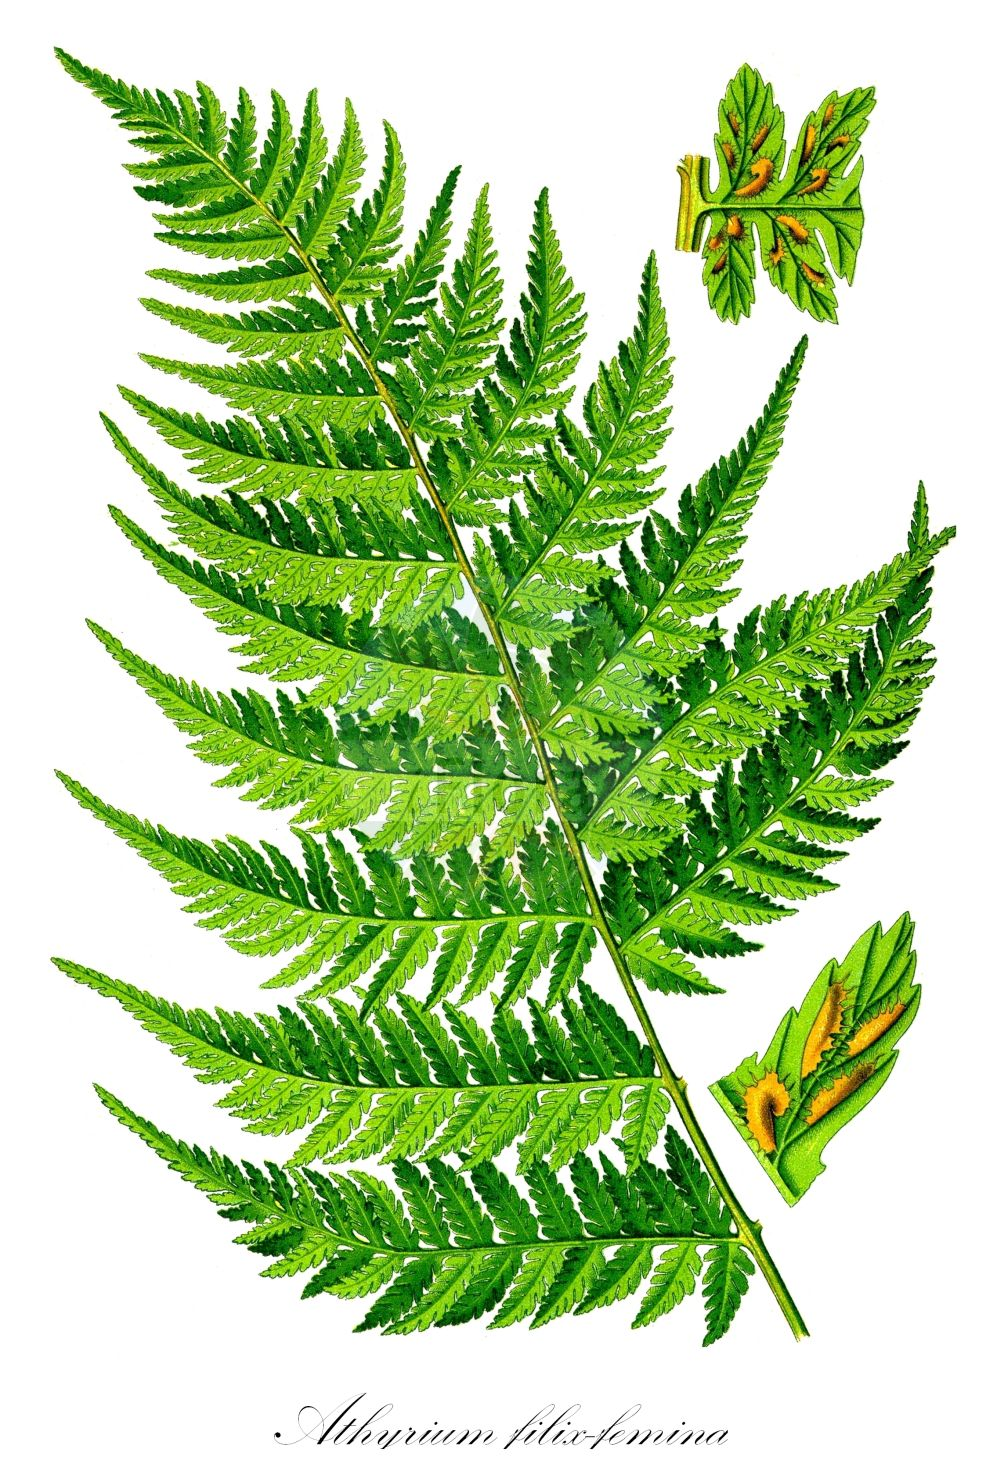 Historische Abbildung von Athyrium filix-femina (Wald-Frauenfarn - Lady-fern). Das Bild zeigt Blatt, Bluete, Frucht und Same. ---- Historical Drawing of Athyrium filix-femina (Wald-Frauenfarn - Lady-fern).The image is showing leaf, flower, fruit and seed. (Athyrium filix-femina,Wald-Frauenfarn,Lady-fern,Asplenium filix-femina,Asplenium rhaeticum,Athyrium azoricum,Polypodium axillare,Polypodium filix-femina,Polypodium rhaeticum,Common Woodland Lady Fern,Athyrium,Frauenfarn,Lady-fern,Athyriaceae,Lady-Fern family,Frauenfarngewaechse,Blatt,Bluete,Frucht,Same,leaf,flower,fruit,seed,Thomé (1885))